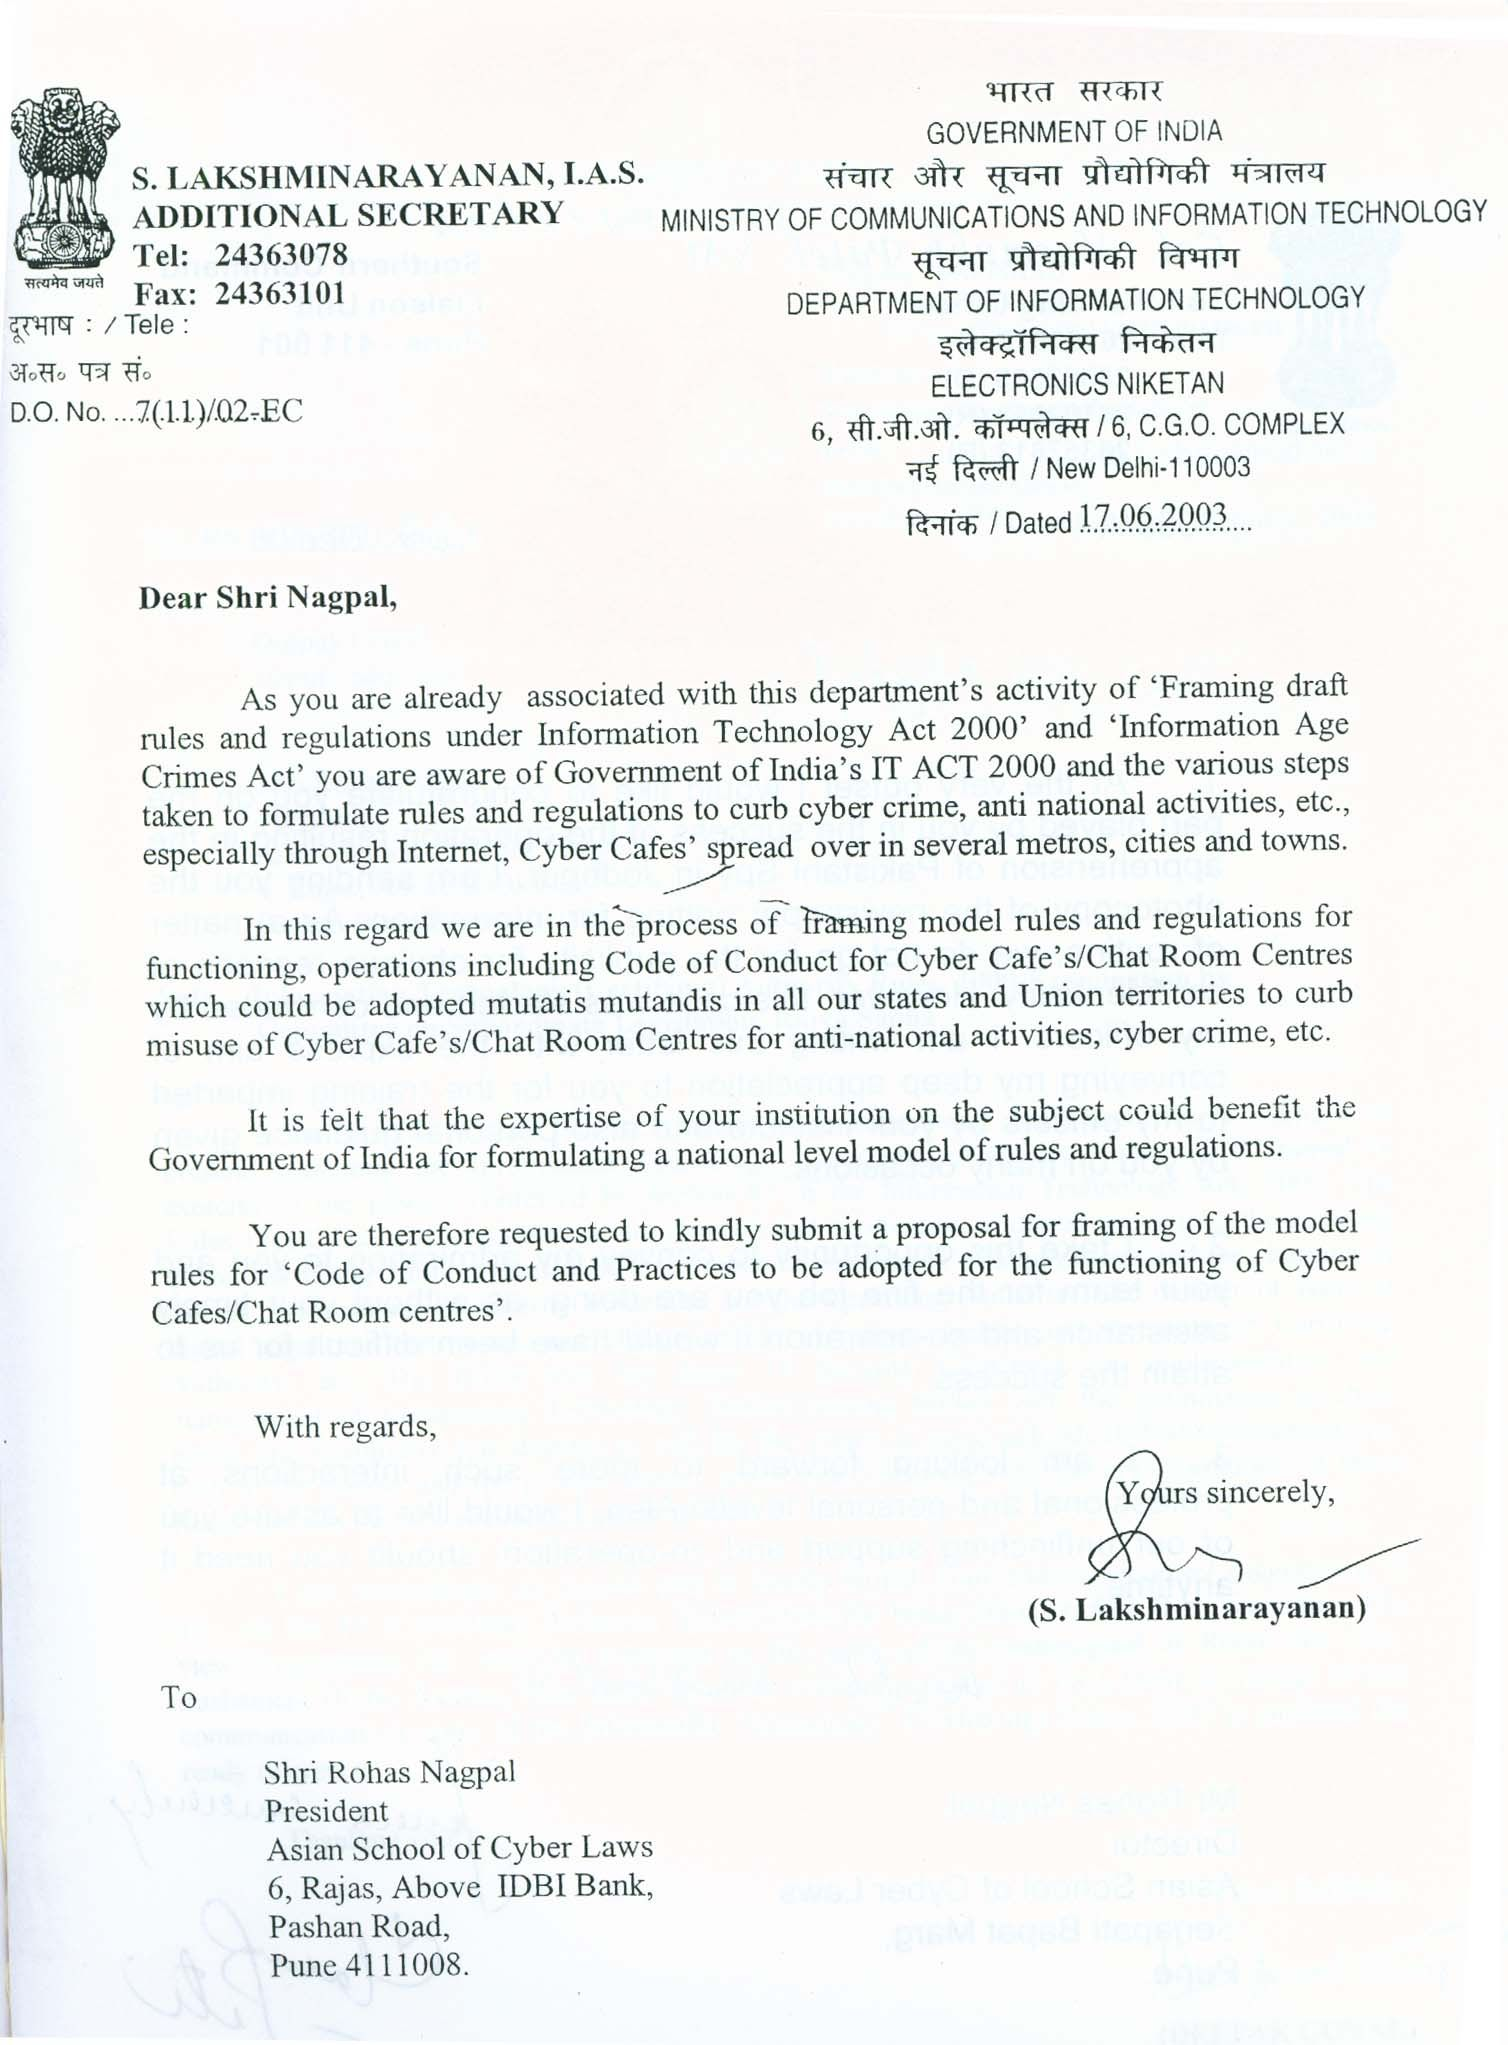 Letter from Additional Secretary, Ministry of